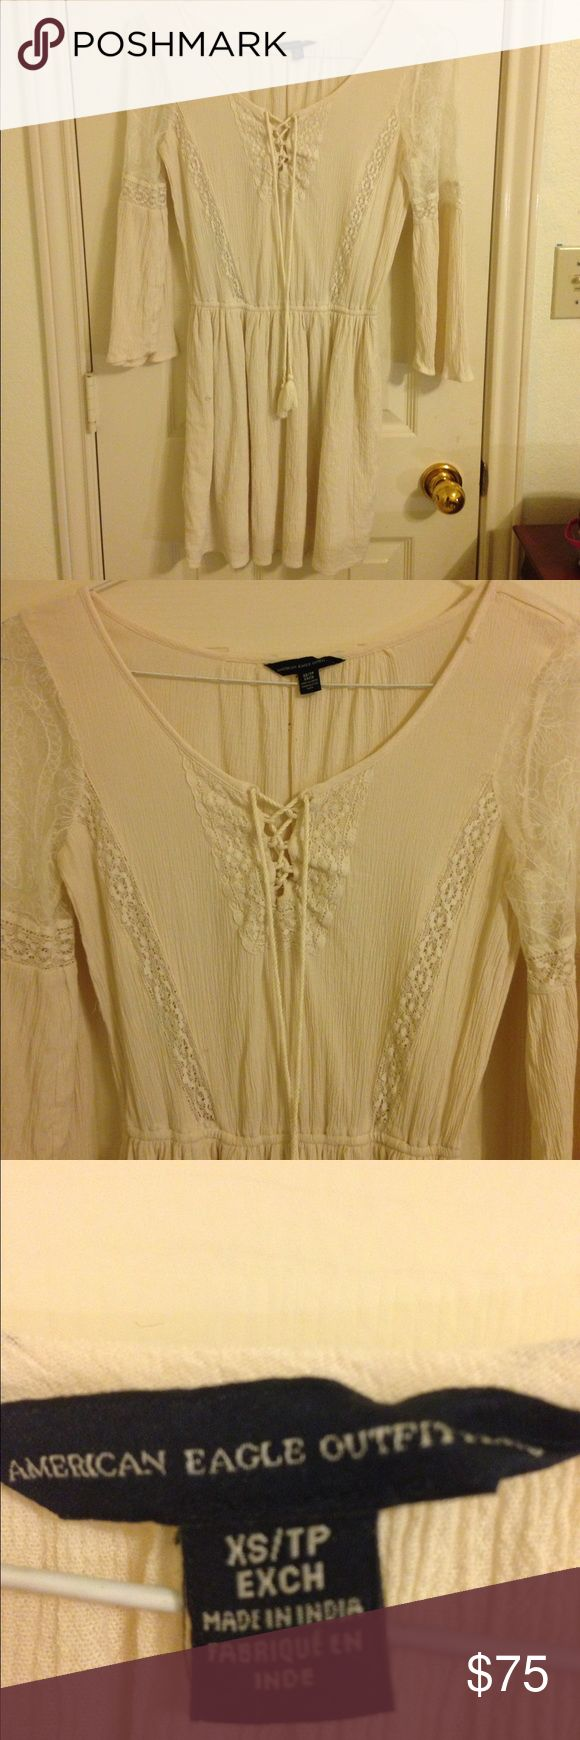 American Eagle Boho Long Sleeve Dress American Eagle Outfitters  New and never worn! Long sleeve dress Super cute boho Middle ties up Lace on the sleeves Cream and beige Perfect for fall and winter with boots! American Eagle Outfitters Dresses Long Sleeve